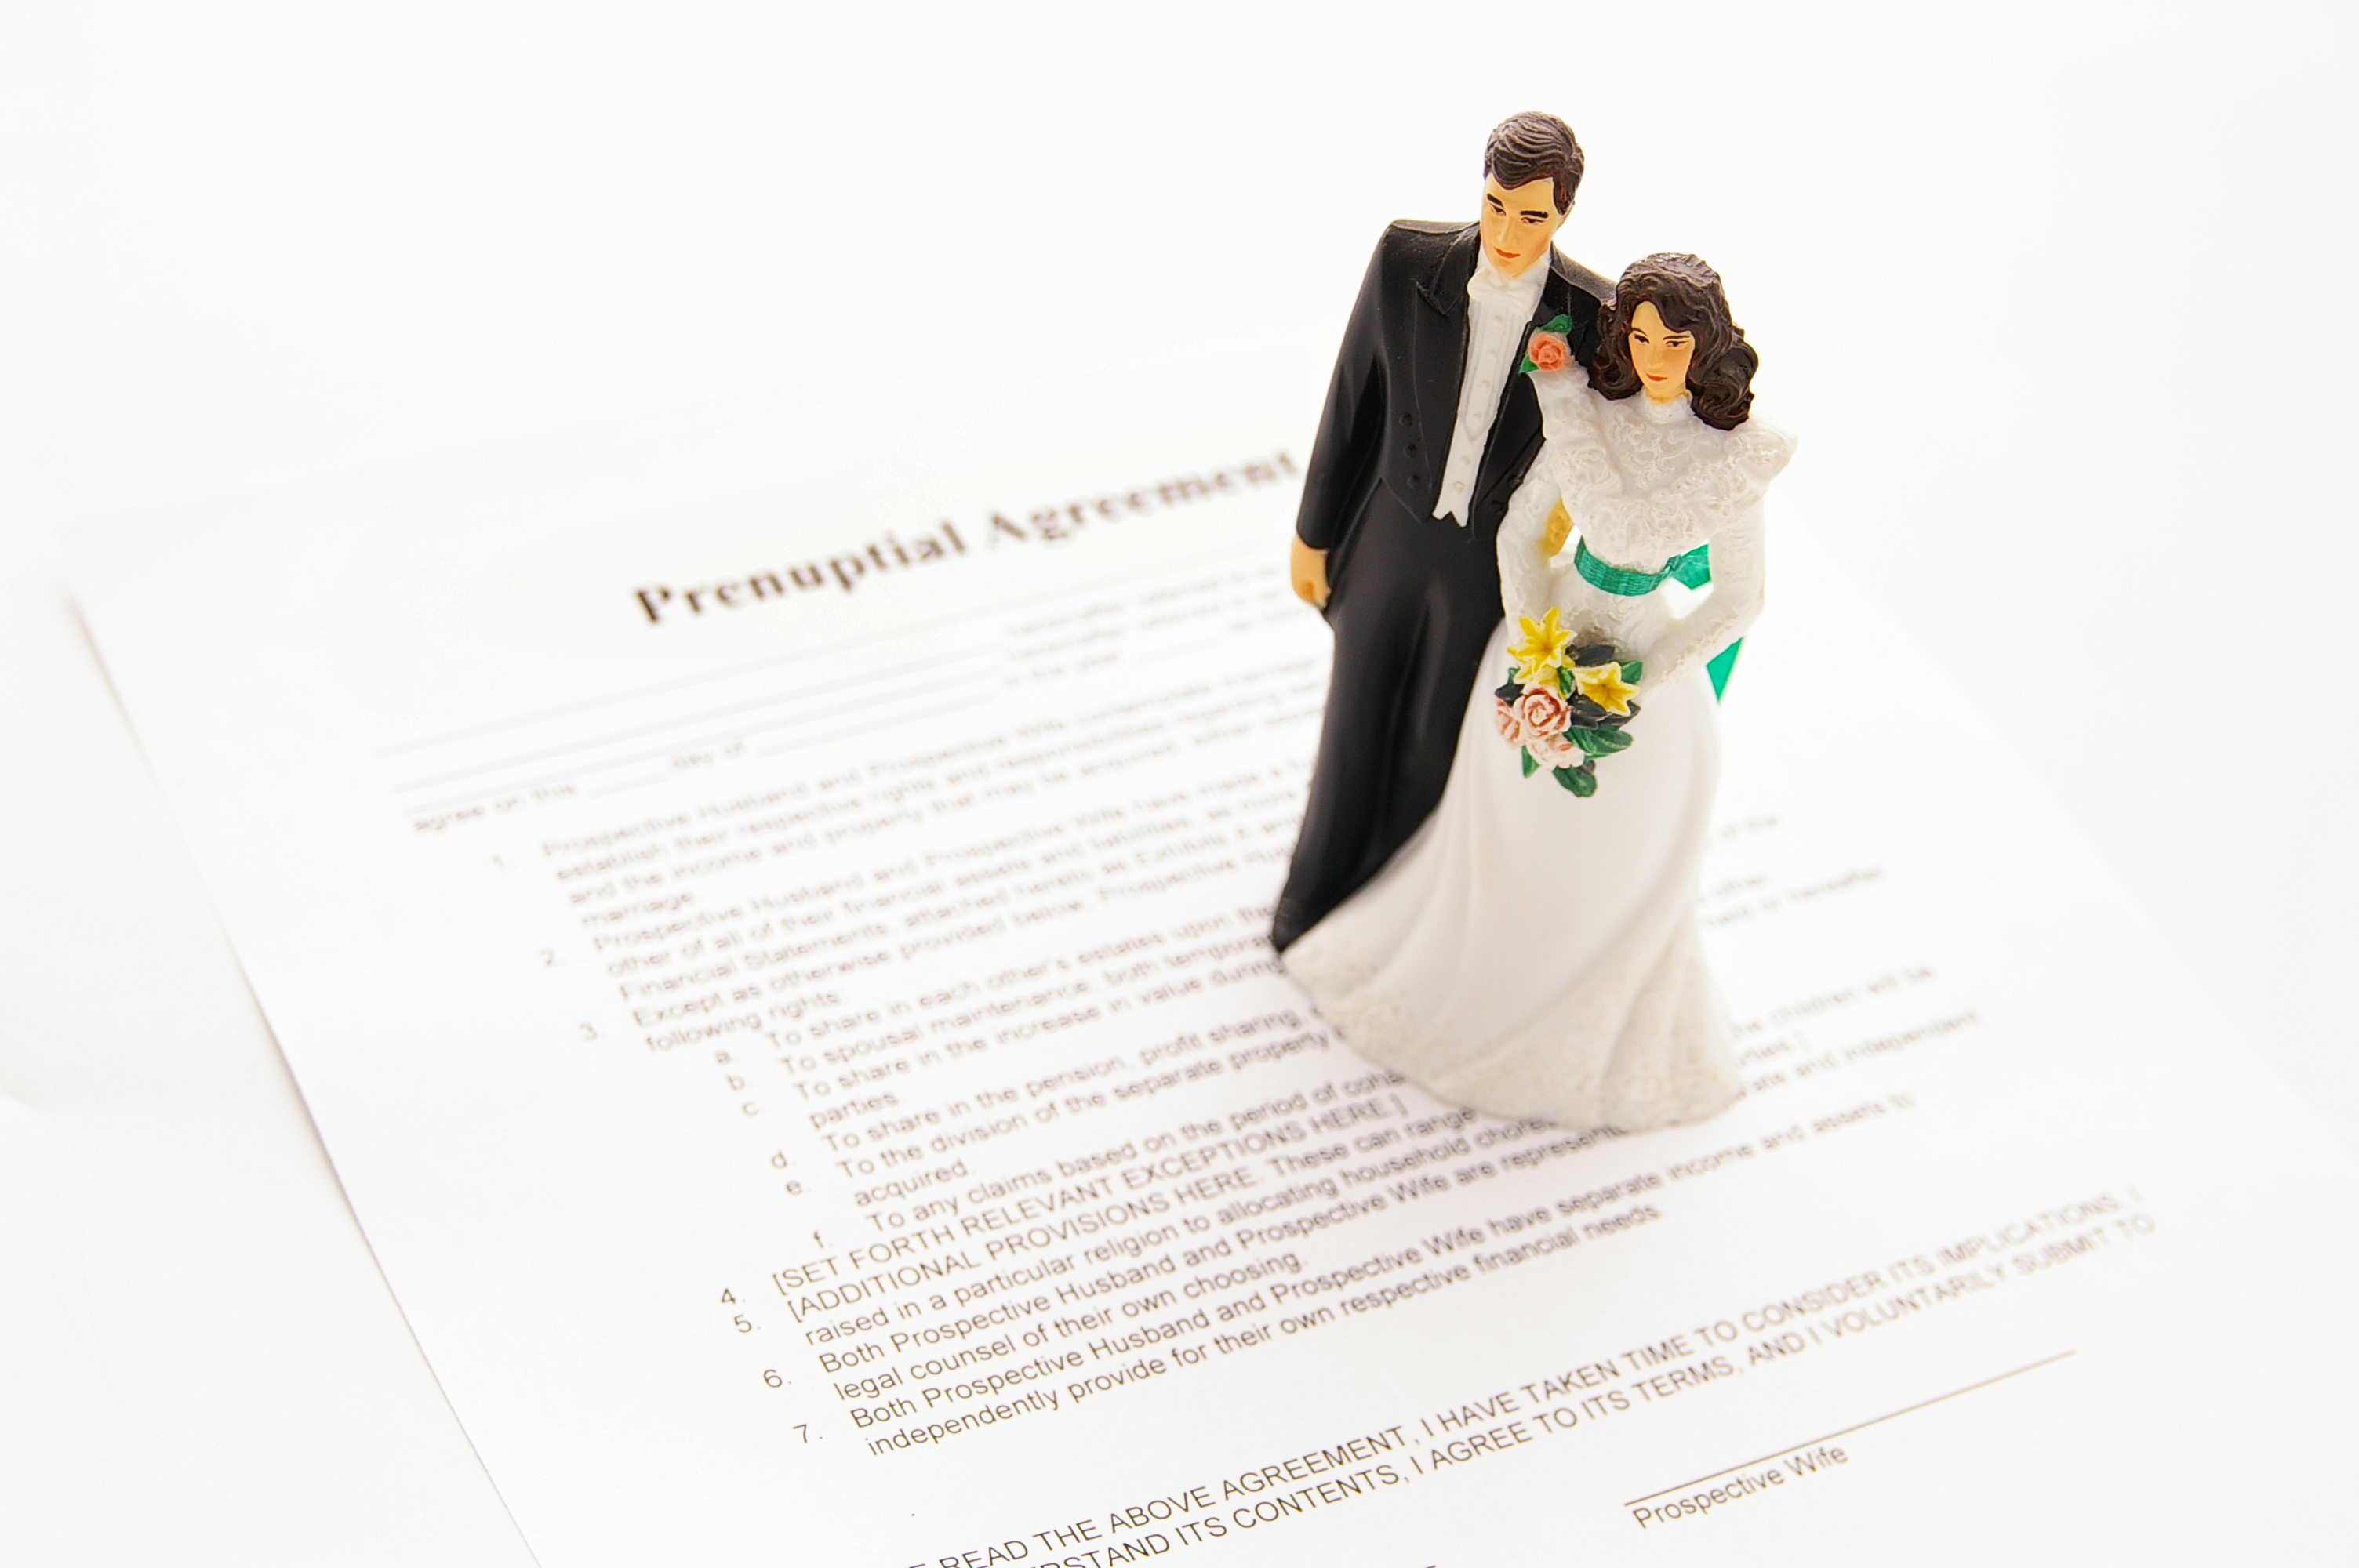 Weddings, Engagements and Prenups | Wealth Management